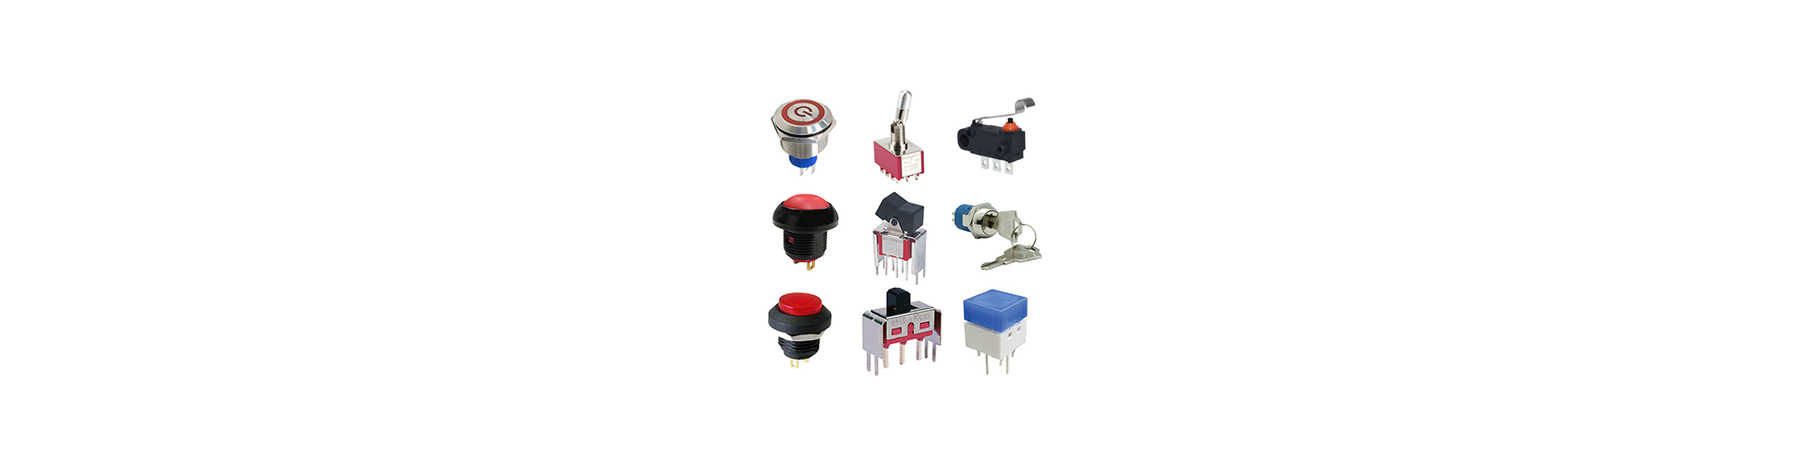 Electronic Components – Switches